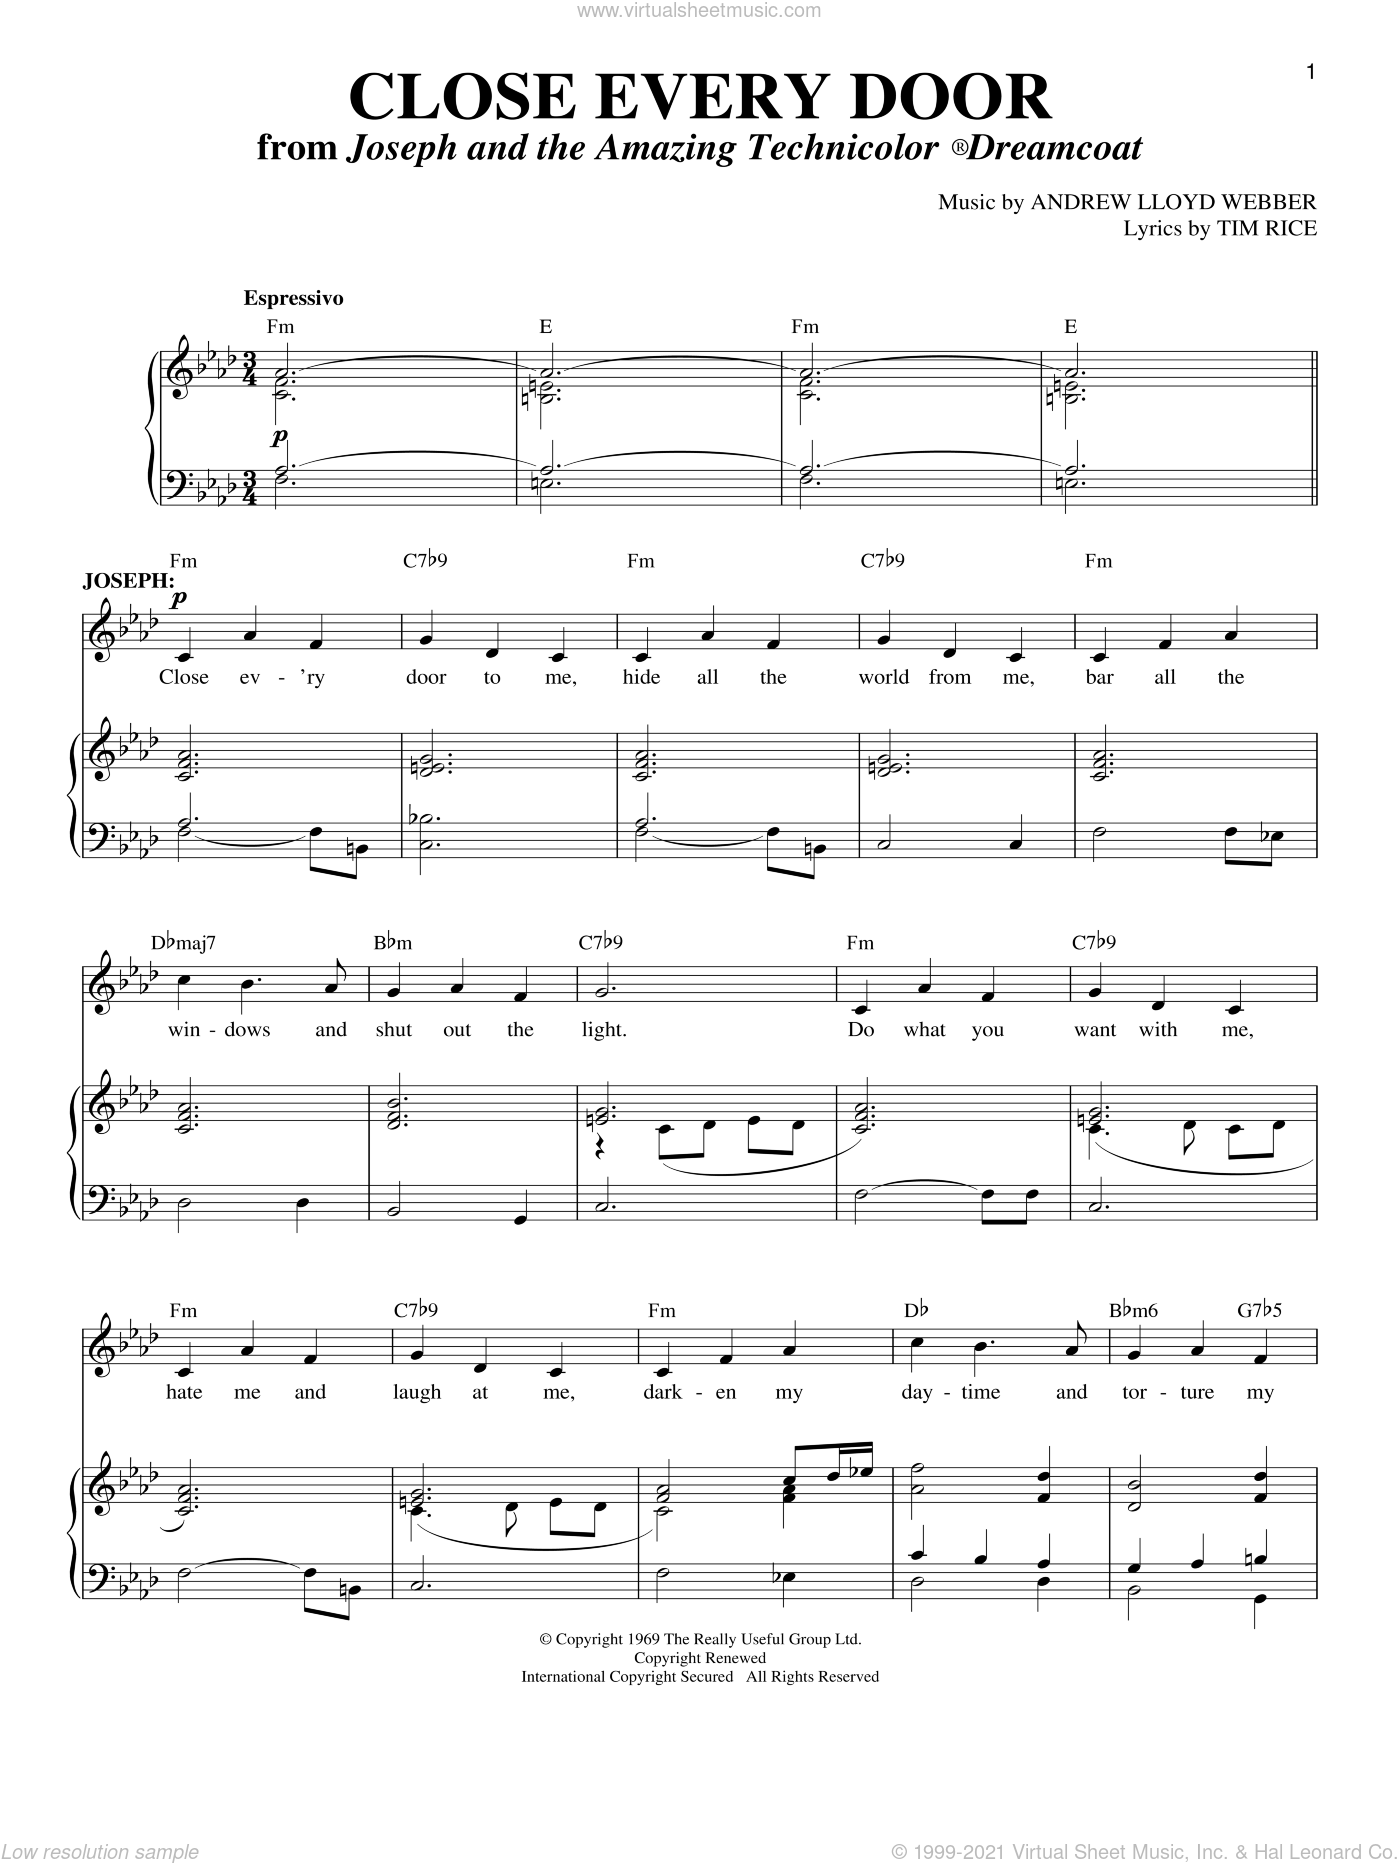 Close Every Door sheet music for voice and piano by Tim Rice